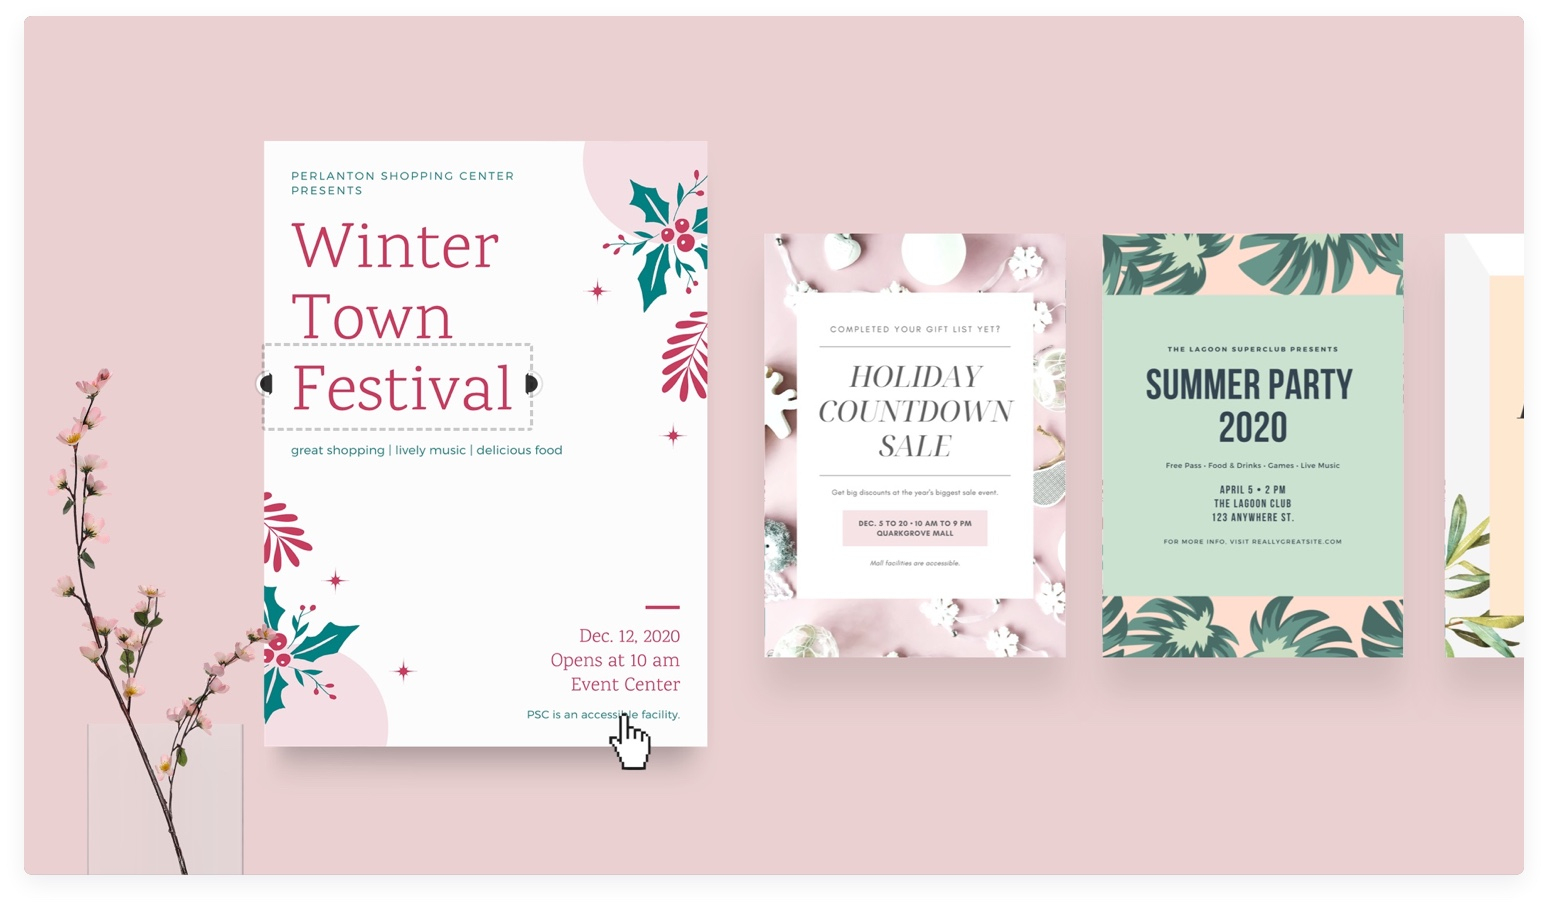 Free Online Flyer Maker: Design Custom Flyers With Canva - About Canva - Create Free Printable Flyer